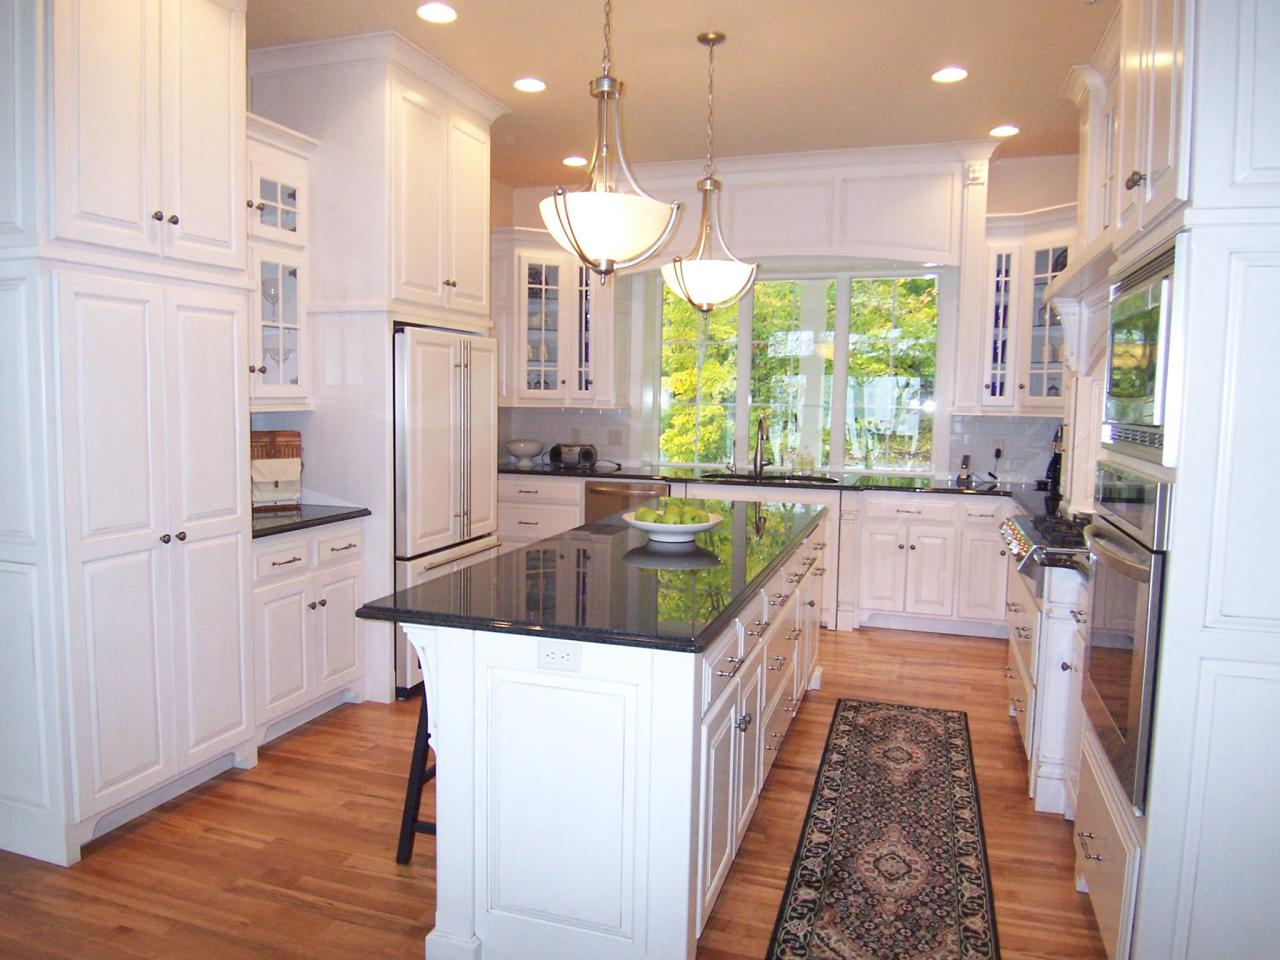 U shaped kitchen design ideas pictures ideas from hgtv for Kitchen planning ideas